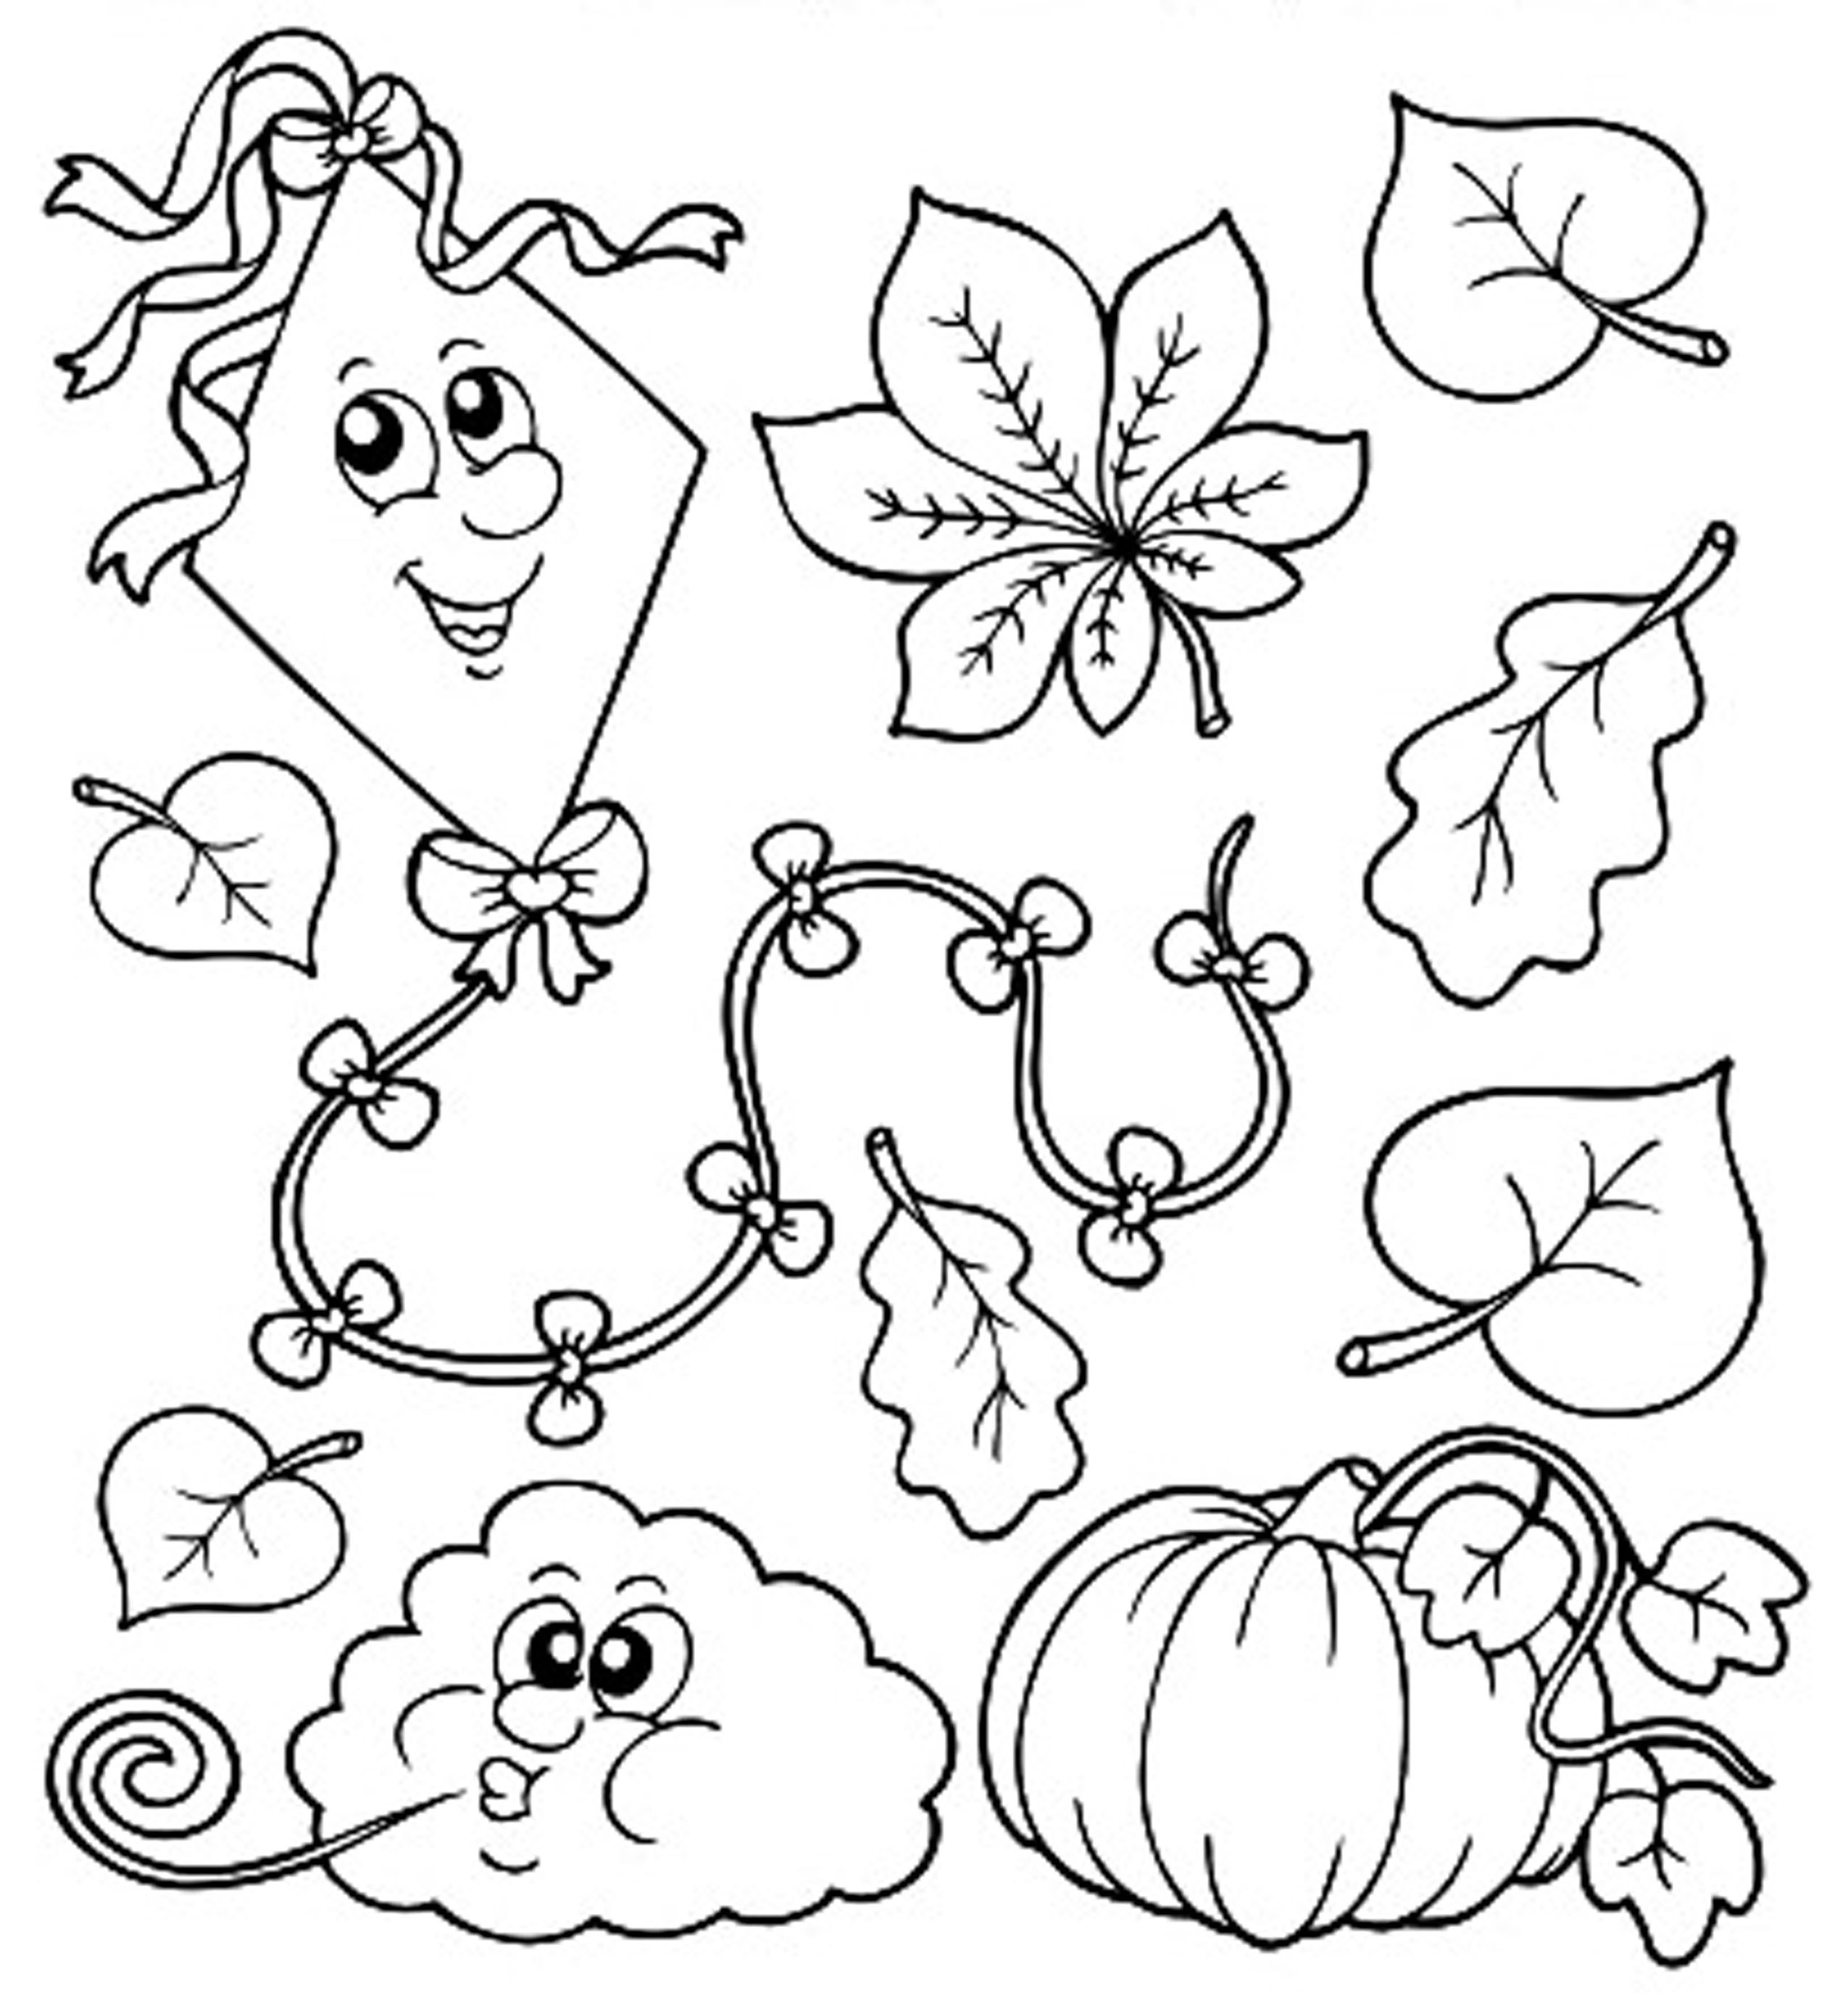 Autumn Coloring Pages For Kids At Getdrawings Com Free For